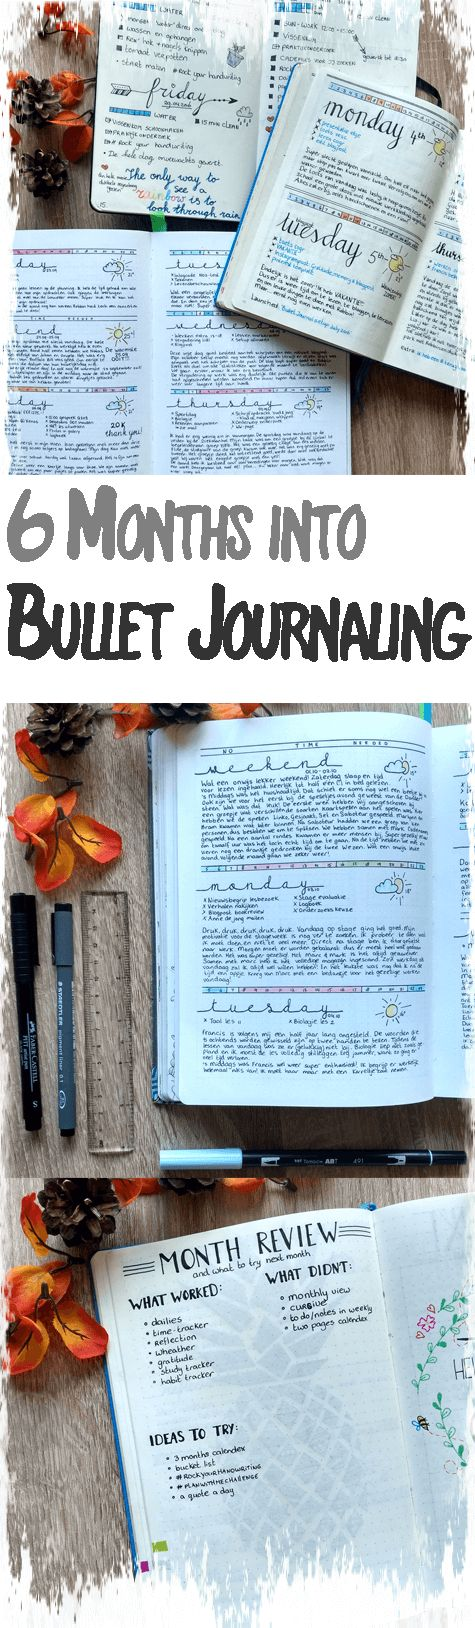 Exactly six months ago I bought a blank Moleskine notebook. I had found some inspiration online about a Bullet Journal and wanted to give it a try. Now, six months, three notebooks and a bunch of pens later, I can tell you that this experience changed my life!